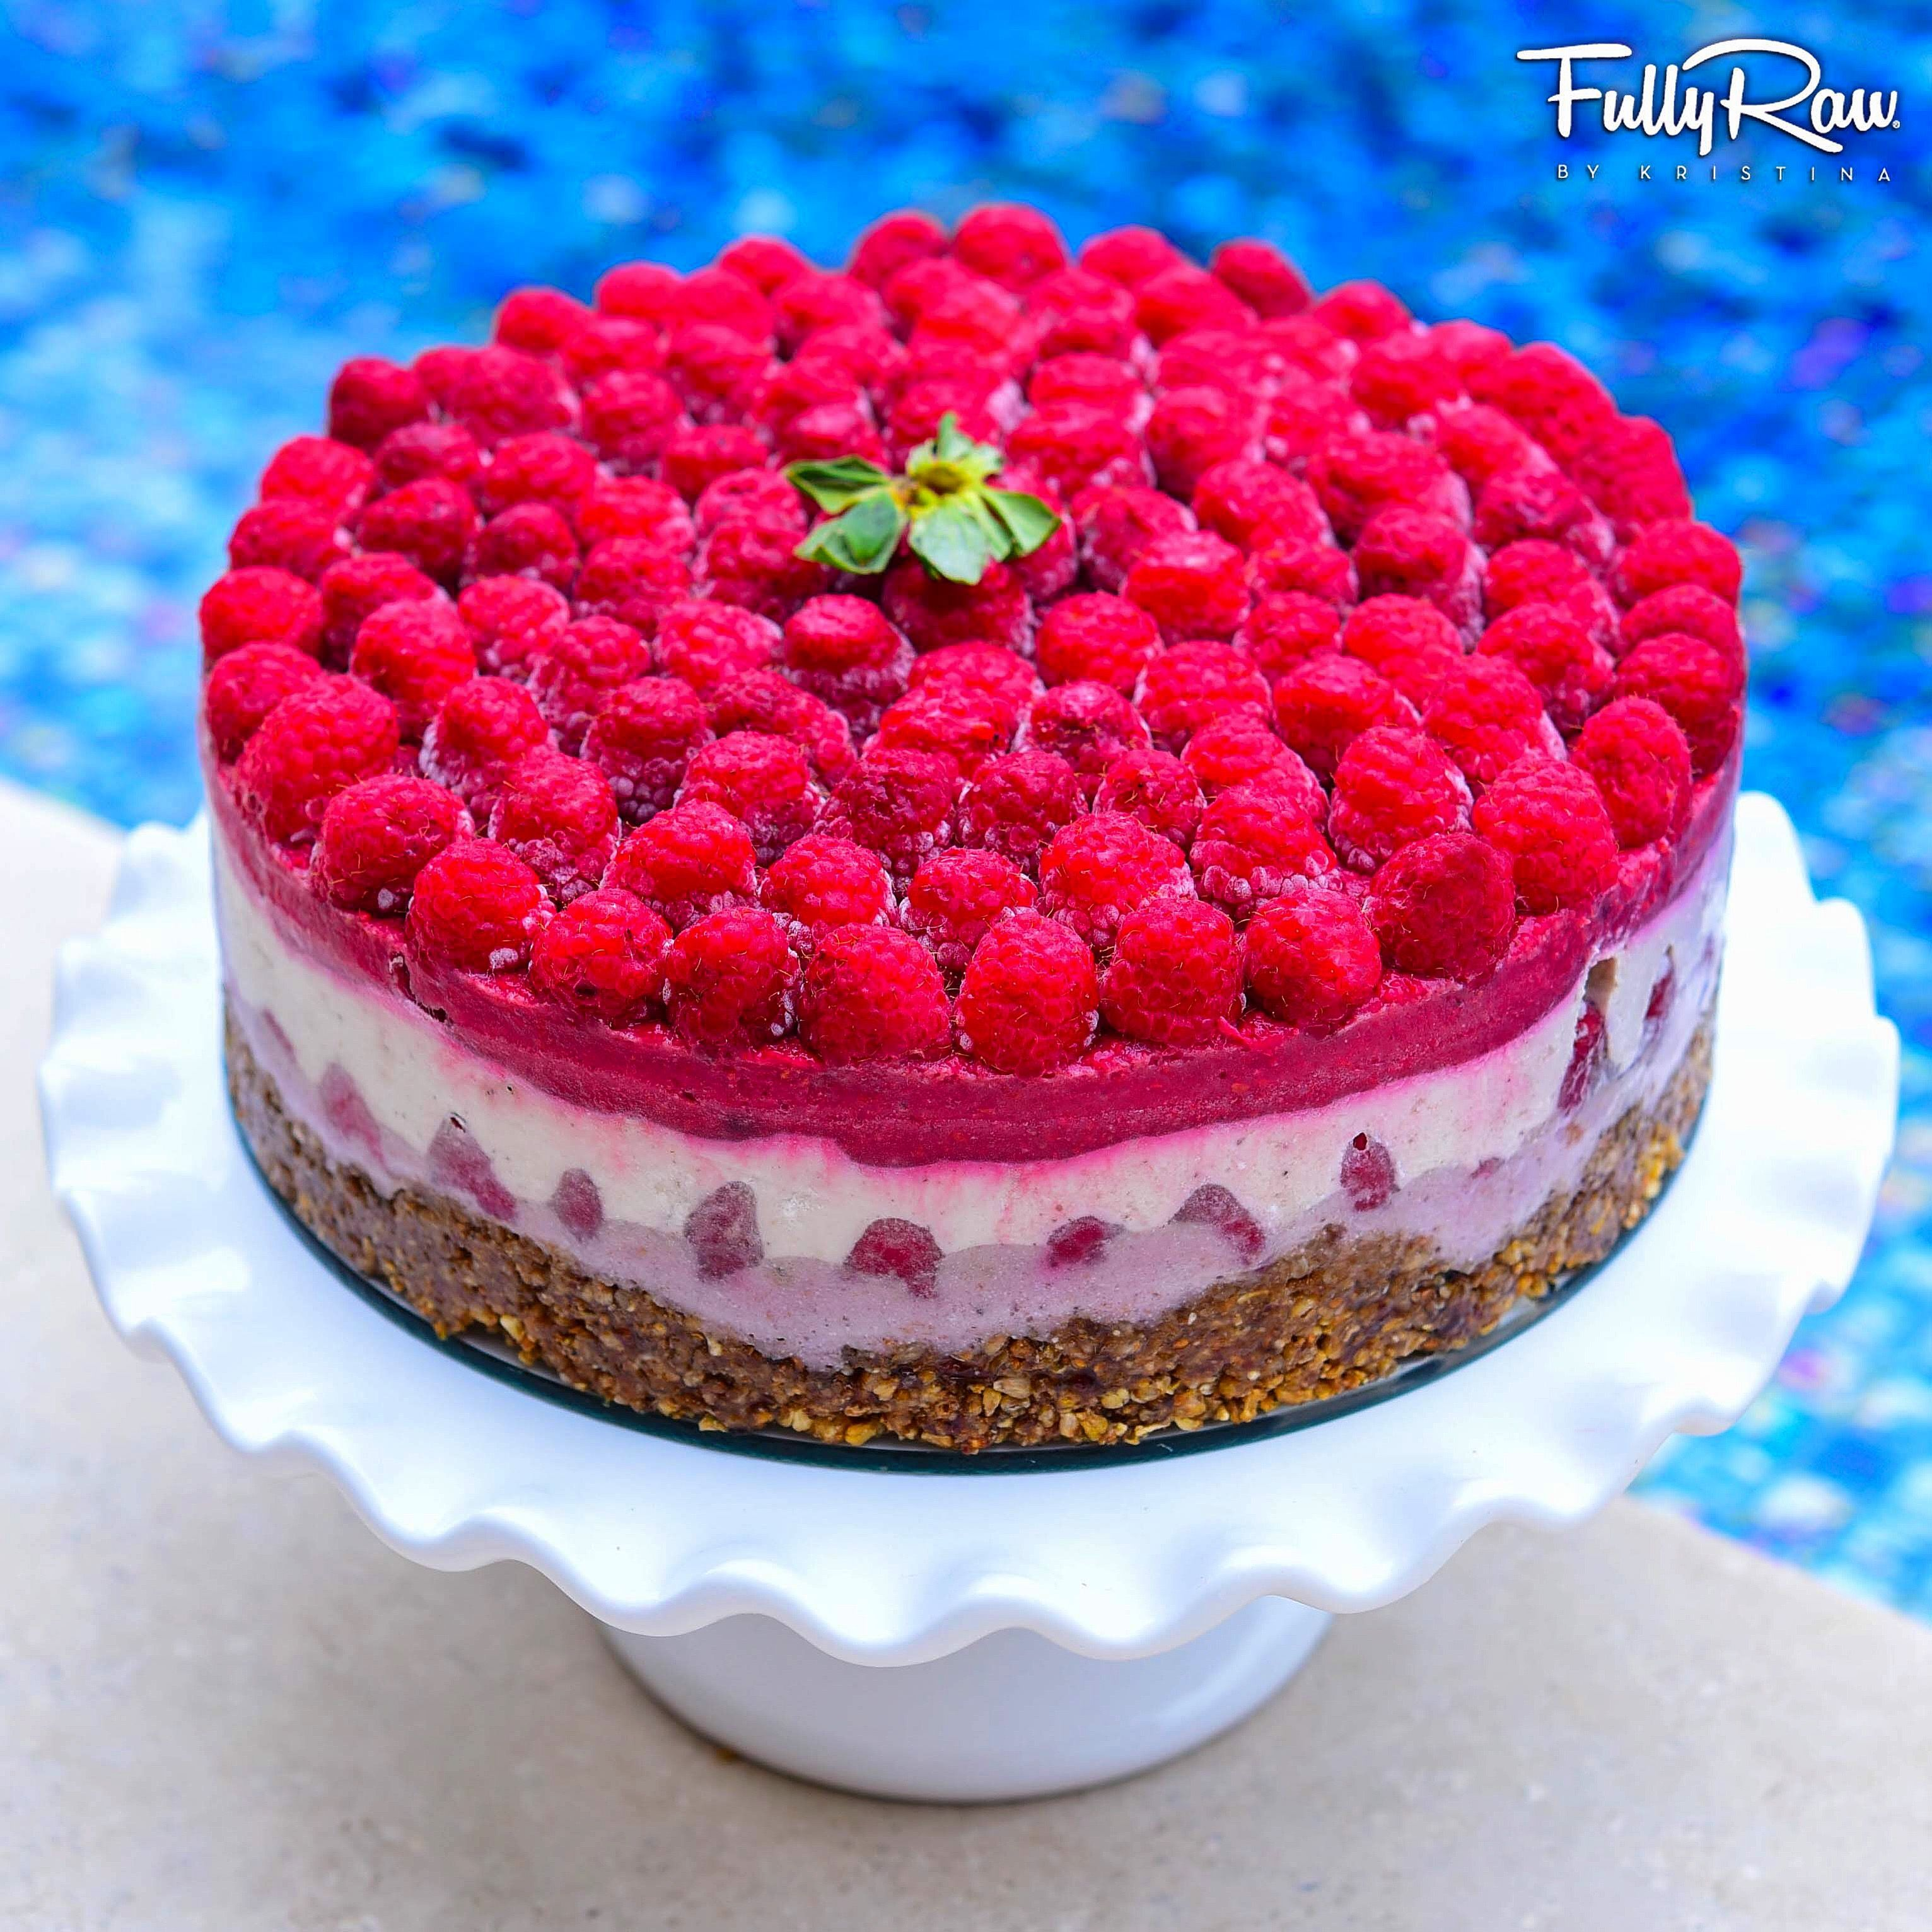 Fullyraw raspberry shortcake raw vegan dairy free gluten living a raw vegan lifestyle means more than just eating raw foods forumfinder Choice Image